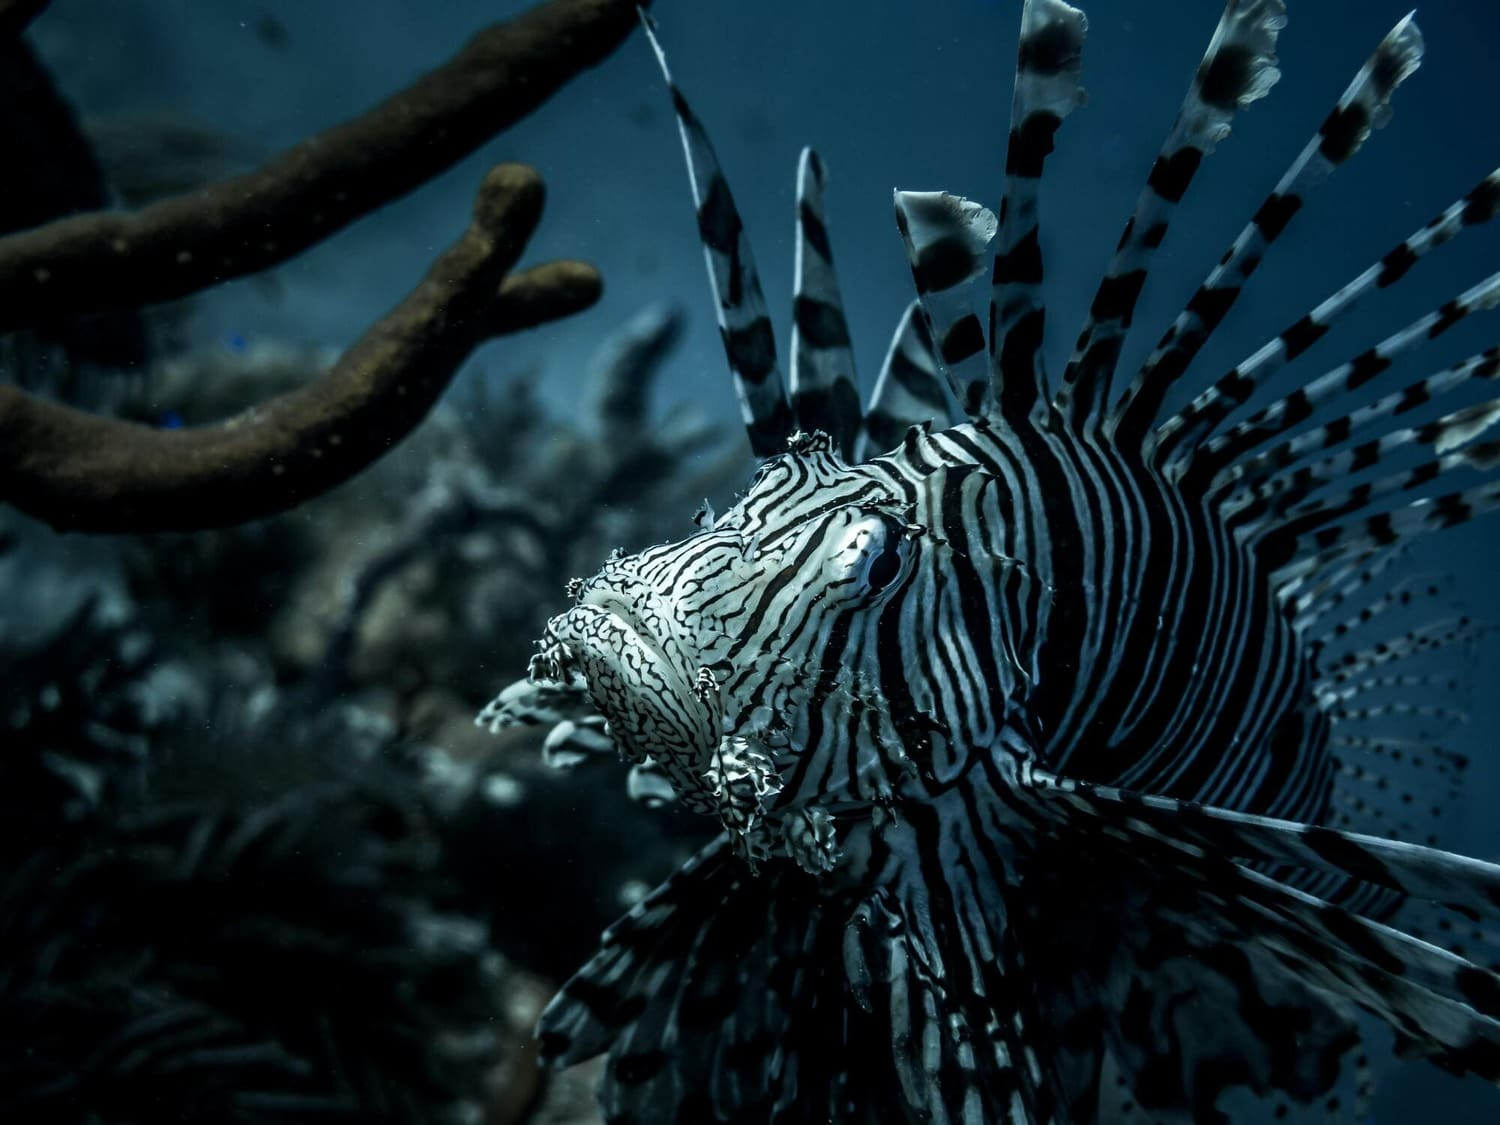 A lion fish in the waters of Turks and Caicos Islands